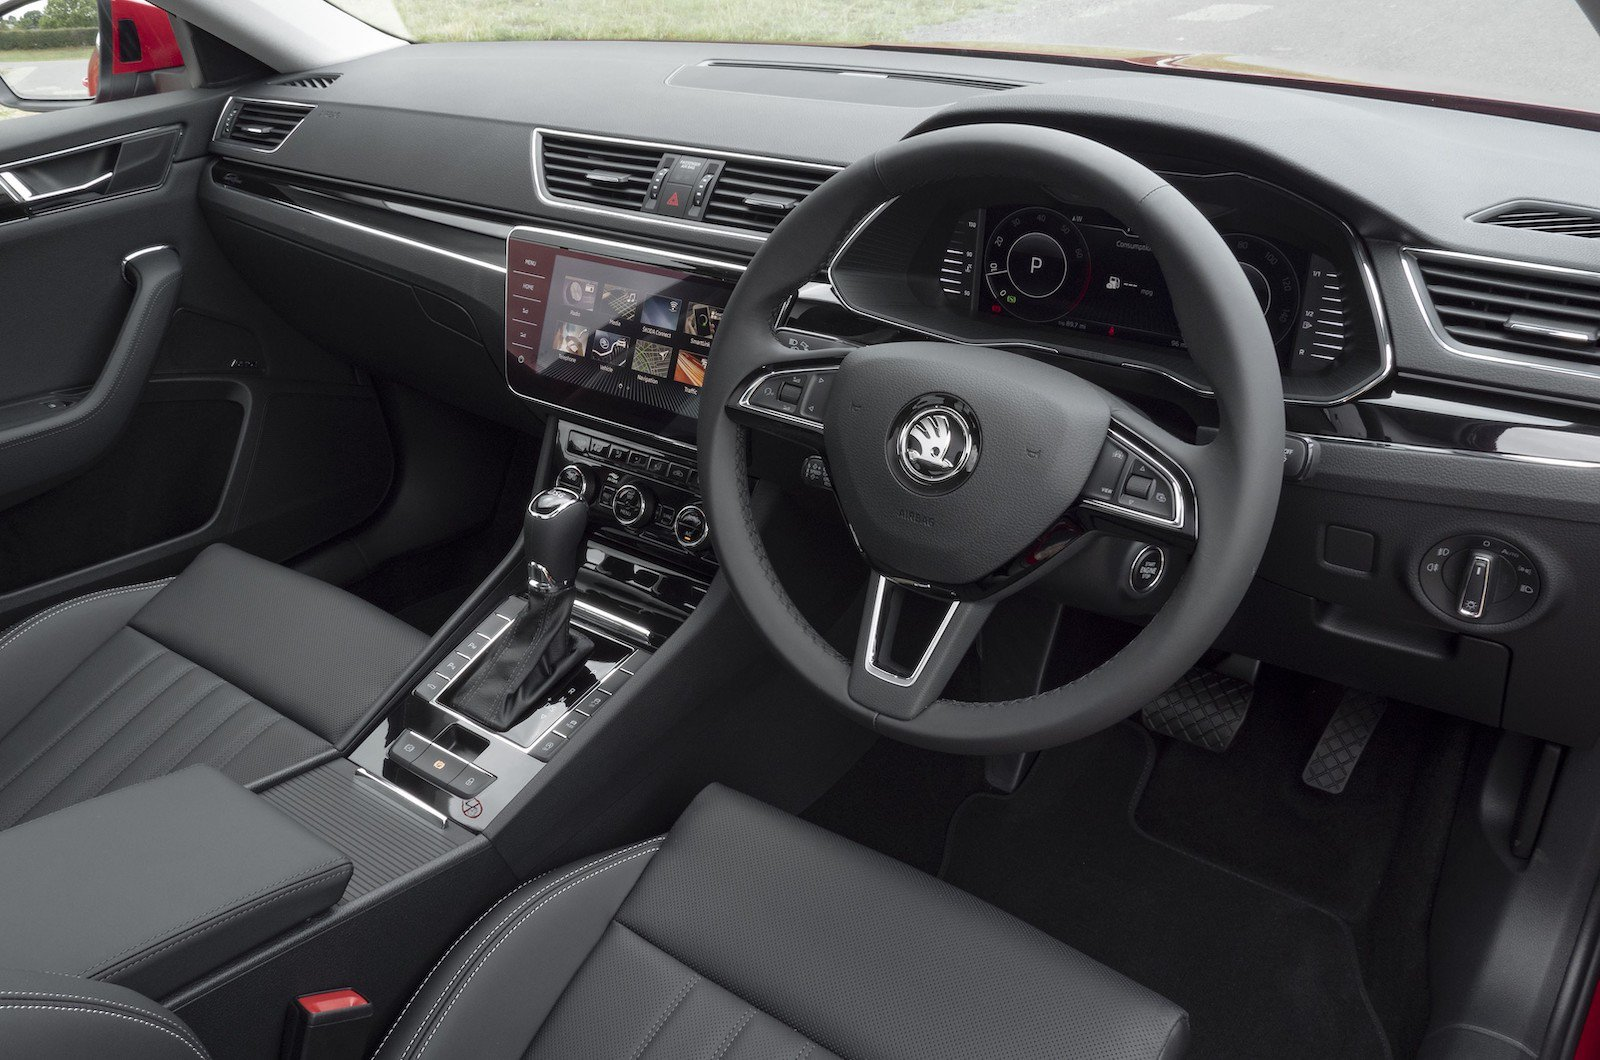 Using the Skoda Connect in-car sat-nav, you can easily find the perfect charger near you. Equally, you can use the Skoda Connect smartphone app to remotely track your charging.